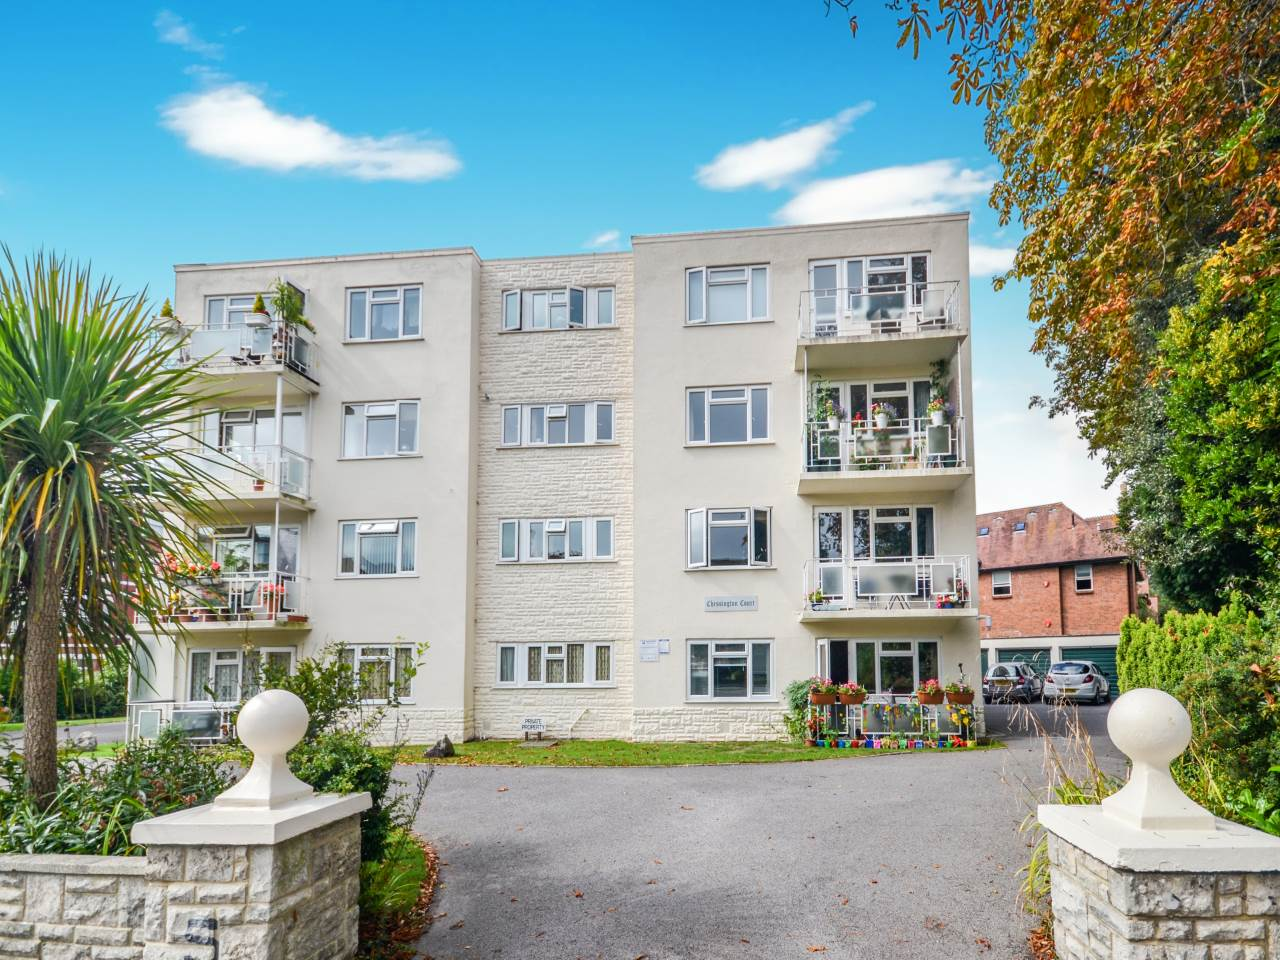 2 bed flat for sale in Durley Chine Road, Bournemouth, BH2